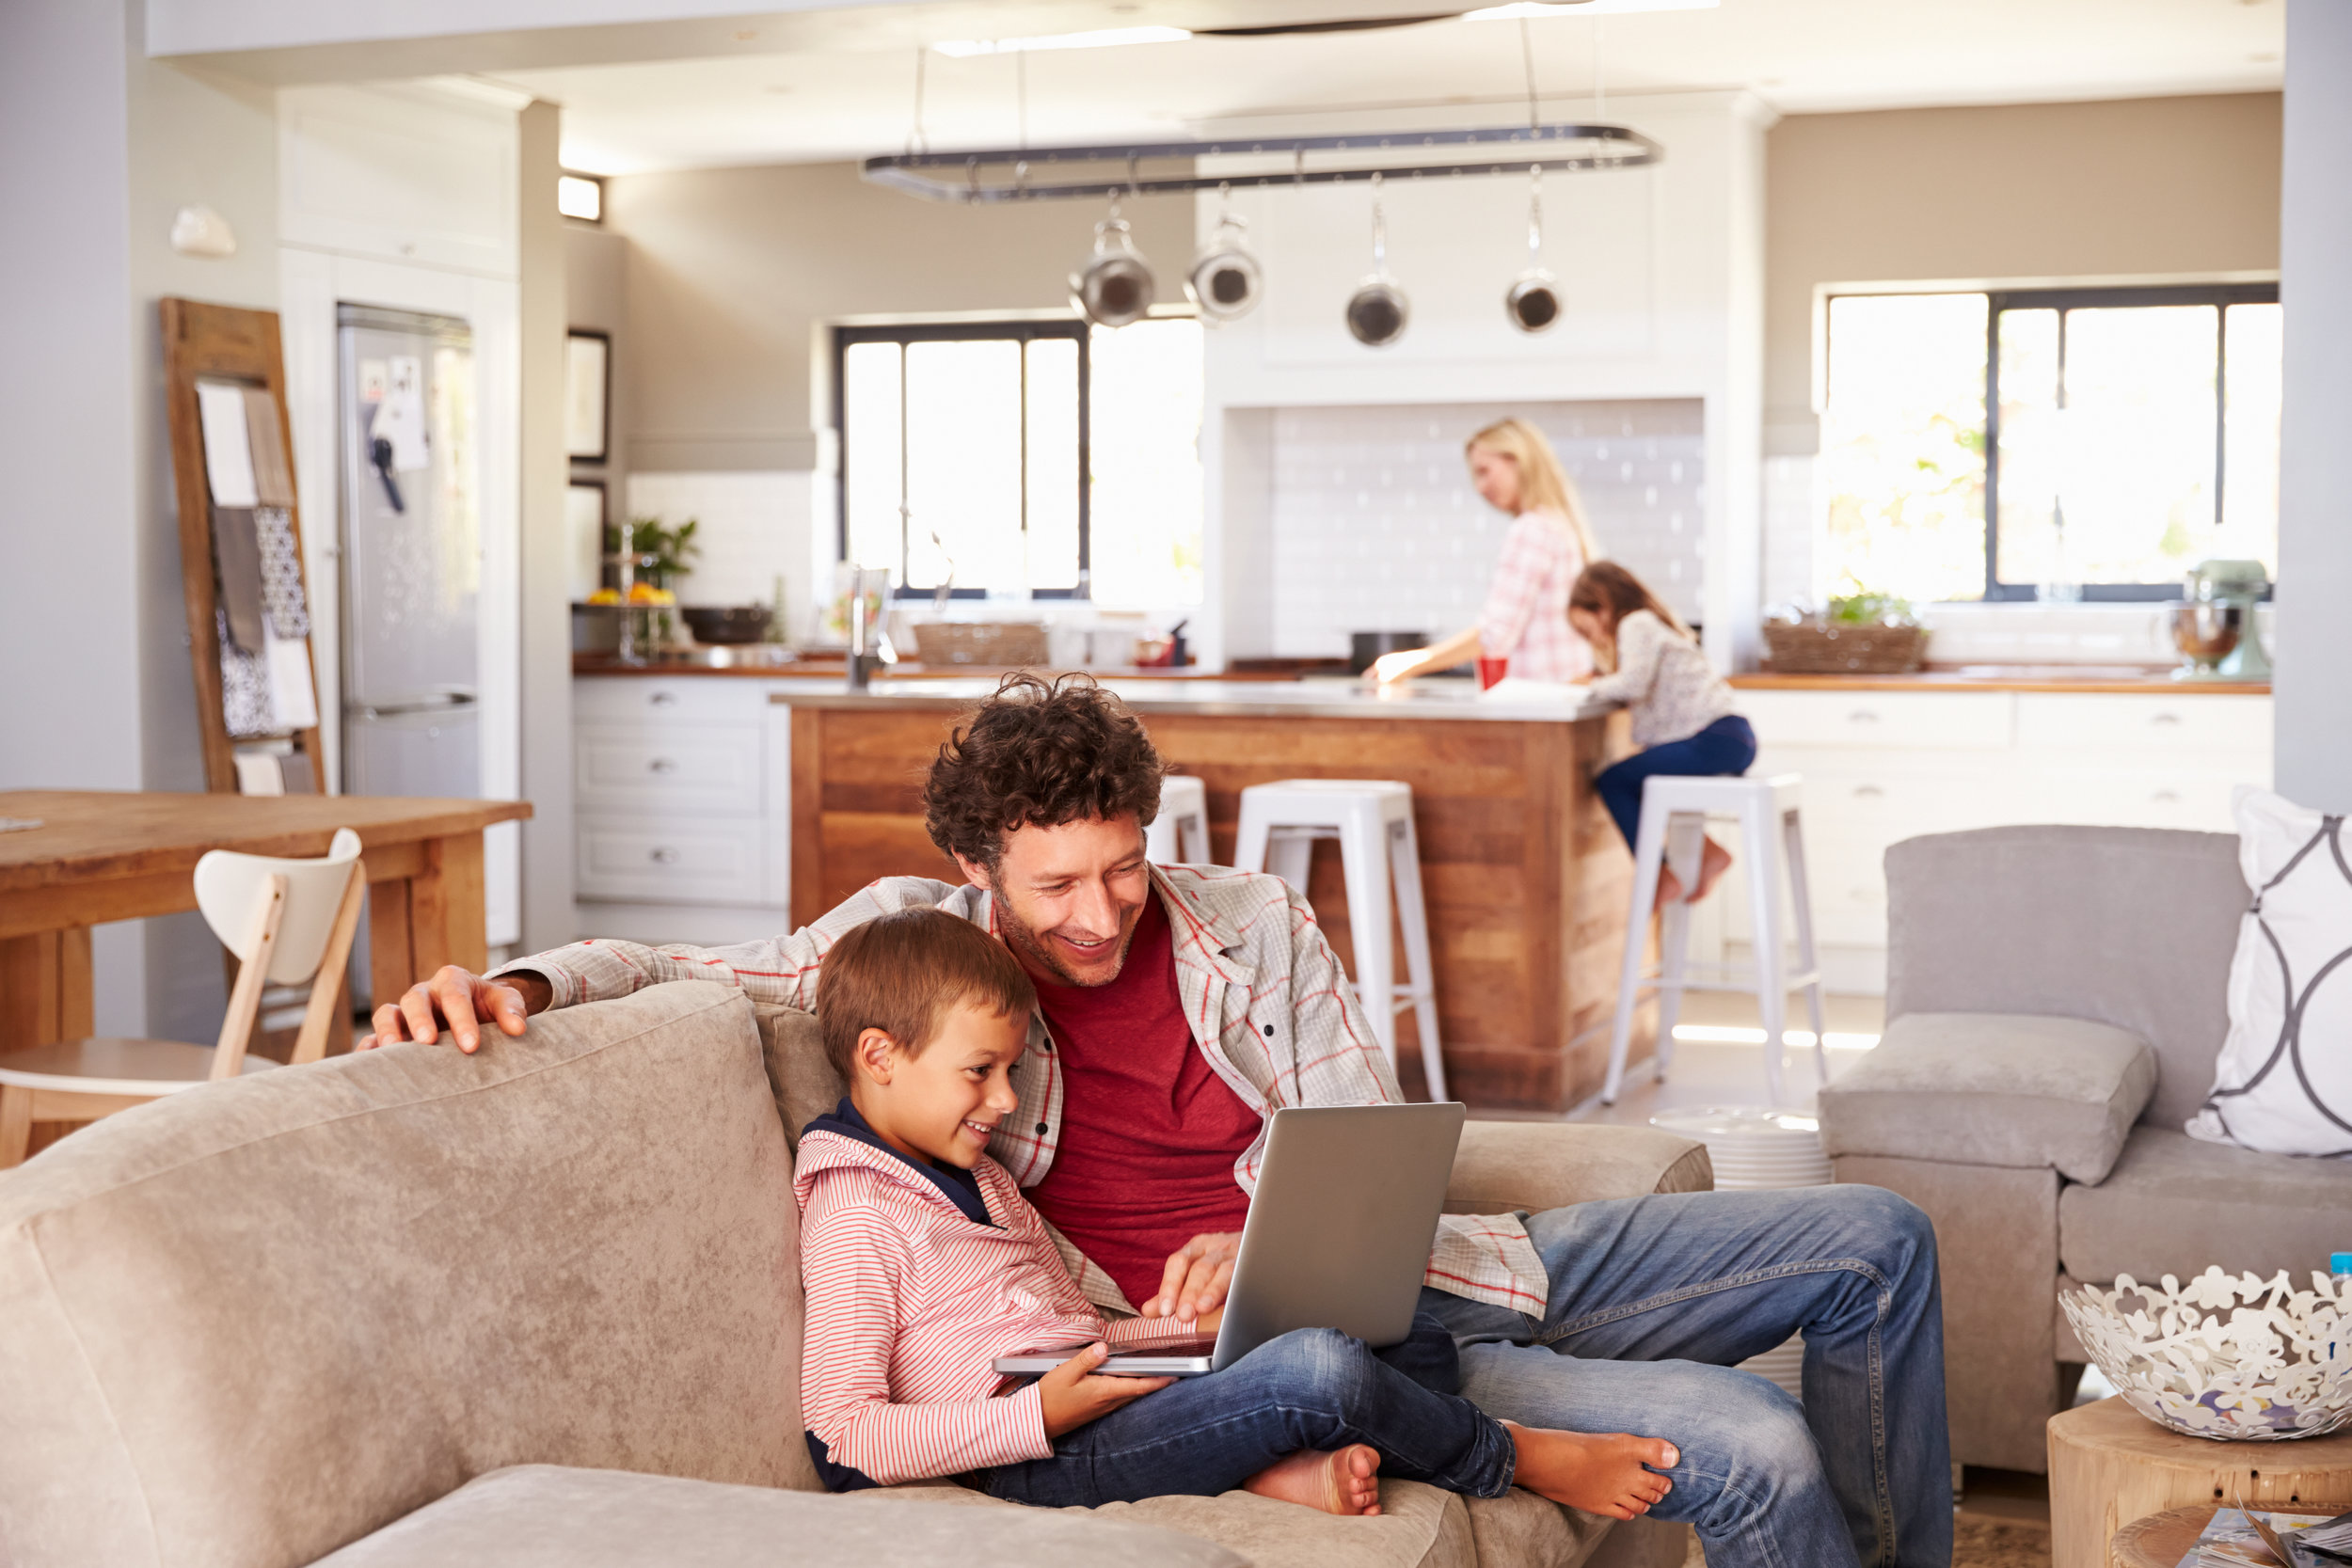 - Want more time to spend with your family? We have affordable maintenance plans that will free up your time so you can be with the ones you love!